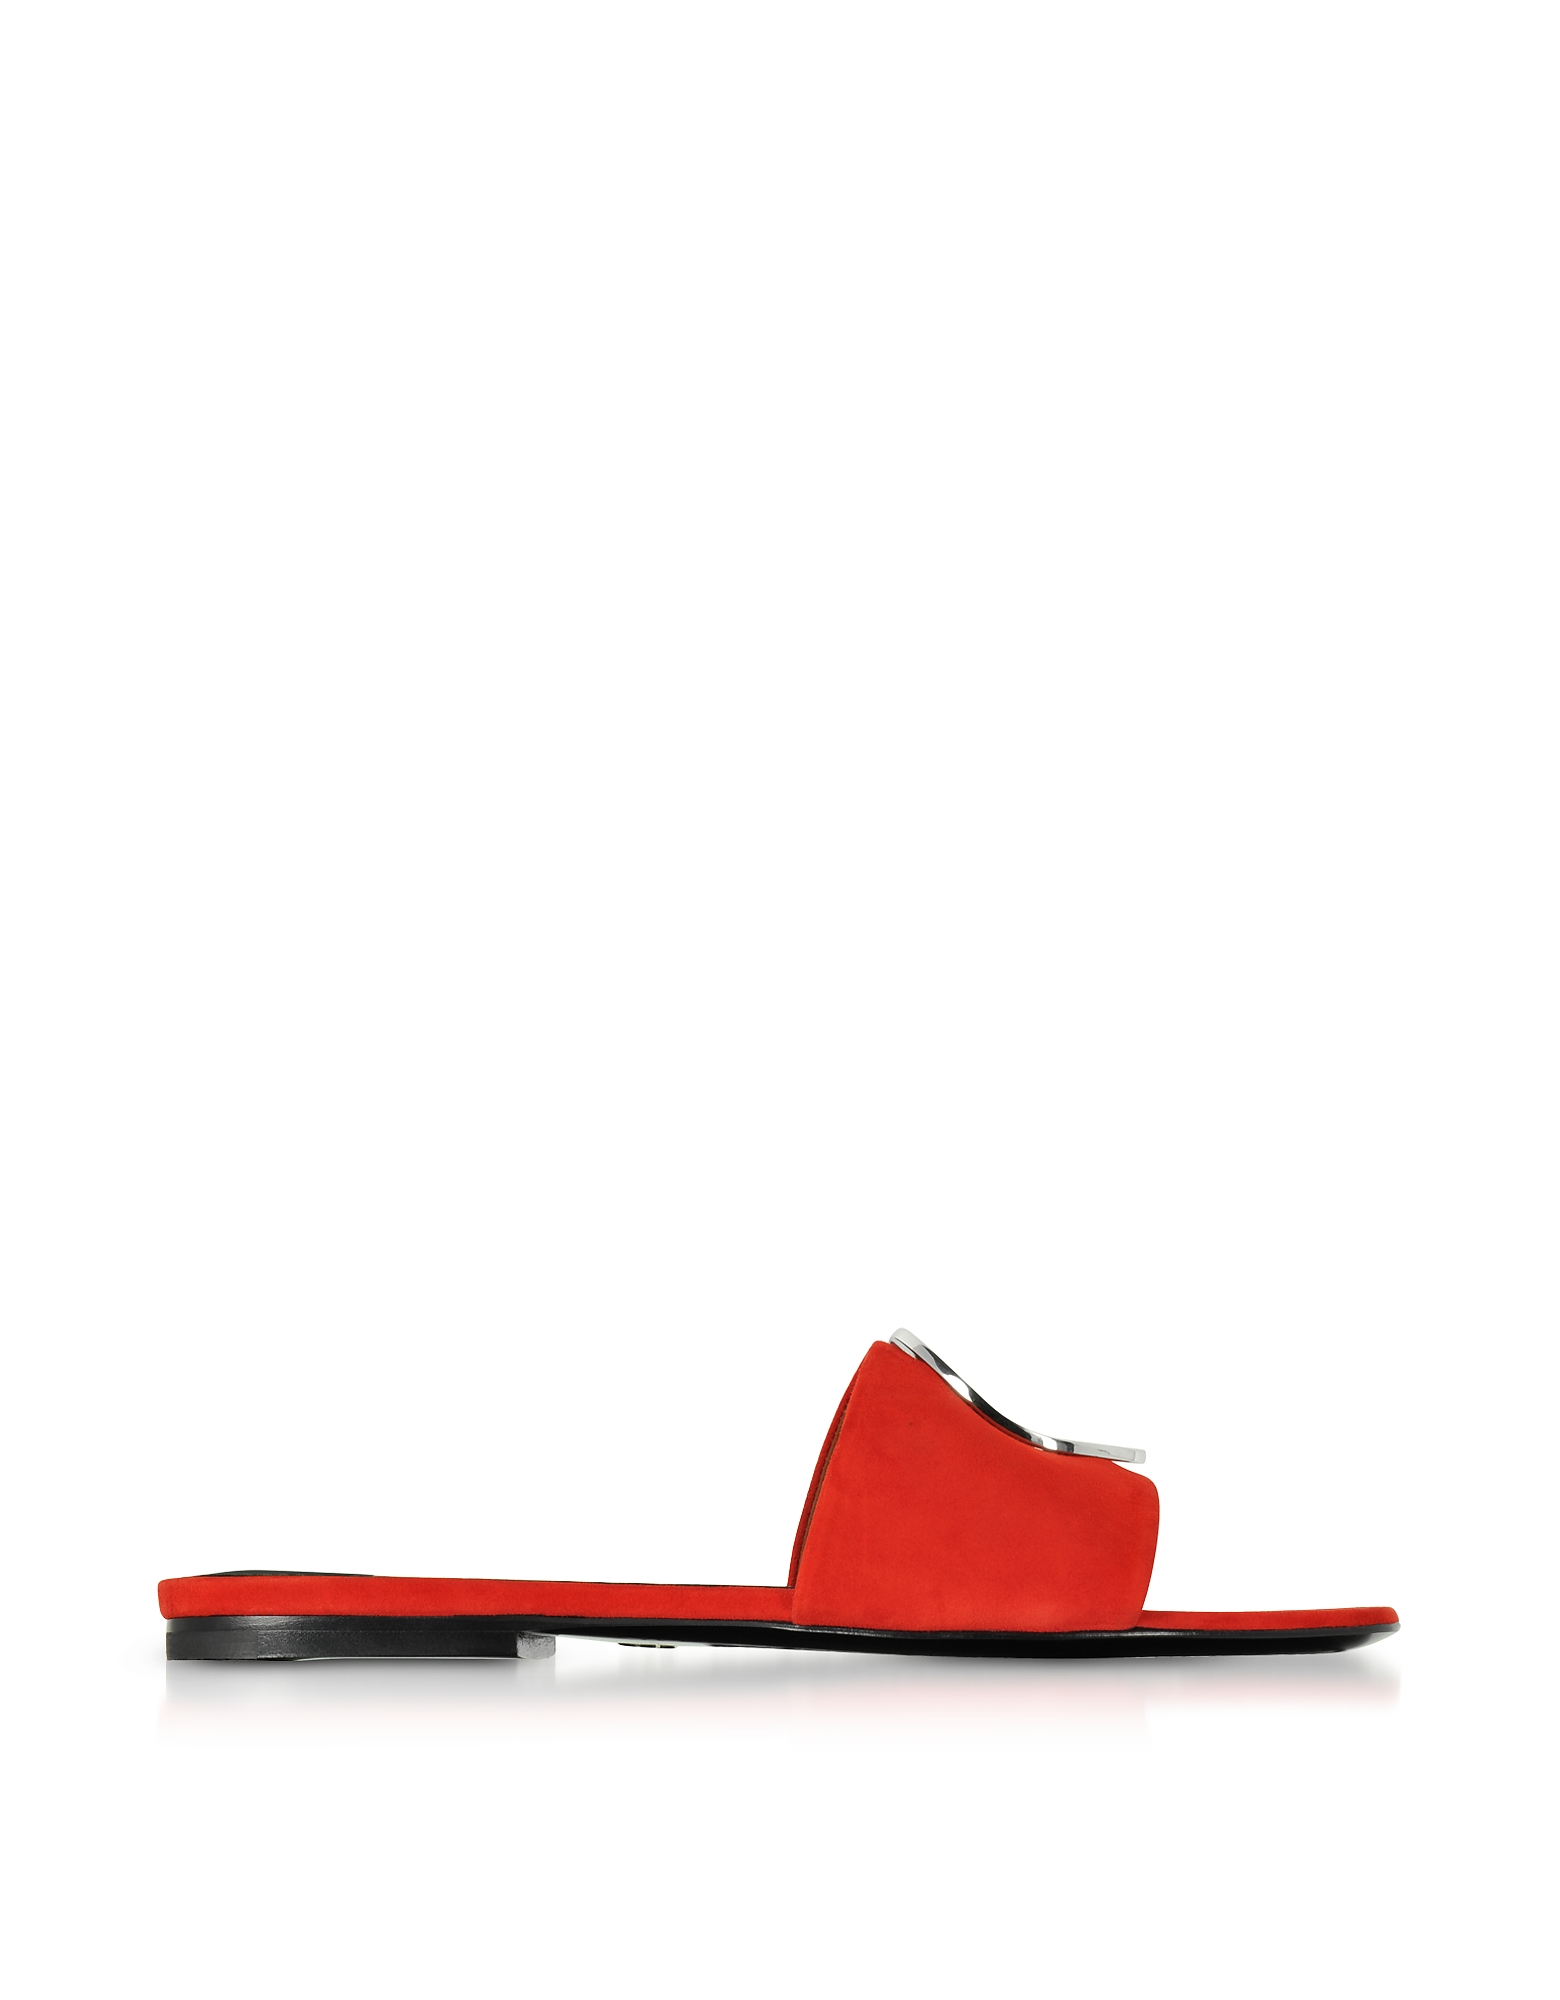 Proenza Schouler Shoes, Tulip Red Suede Slide Sandals